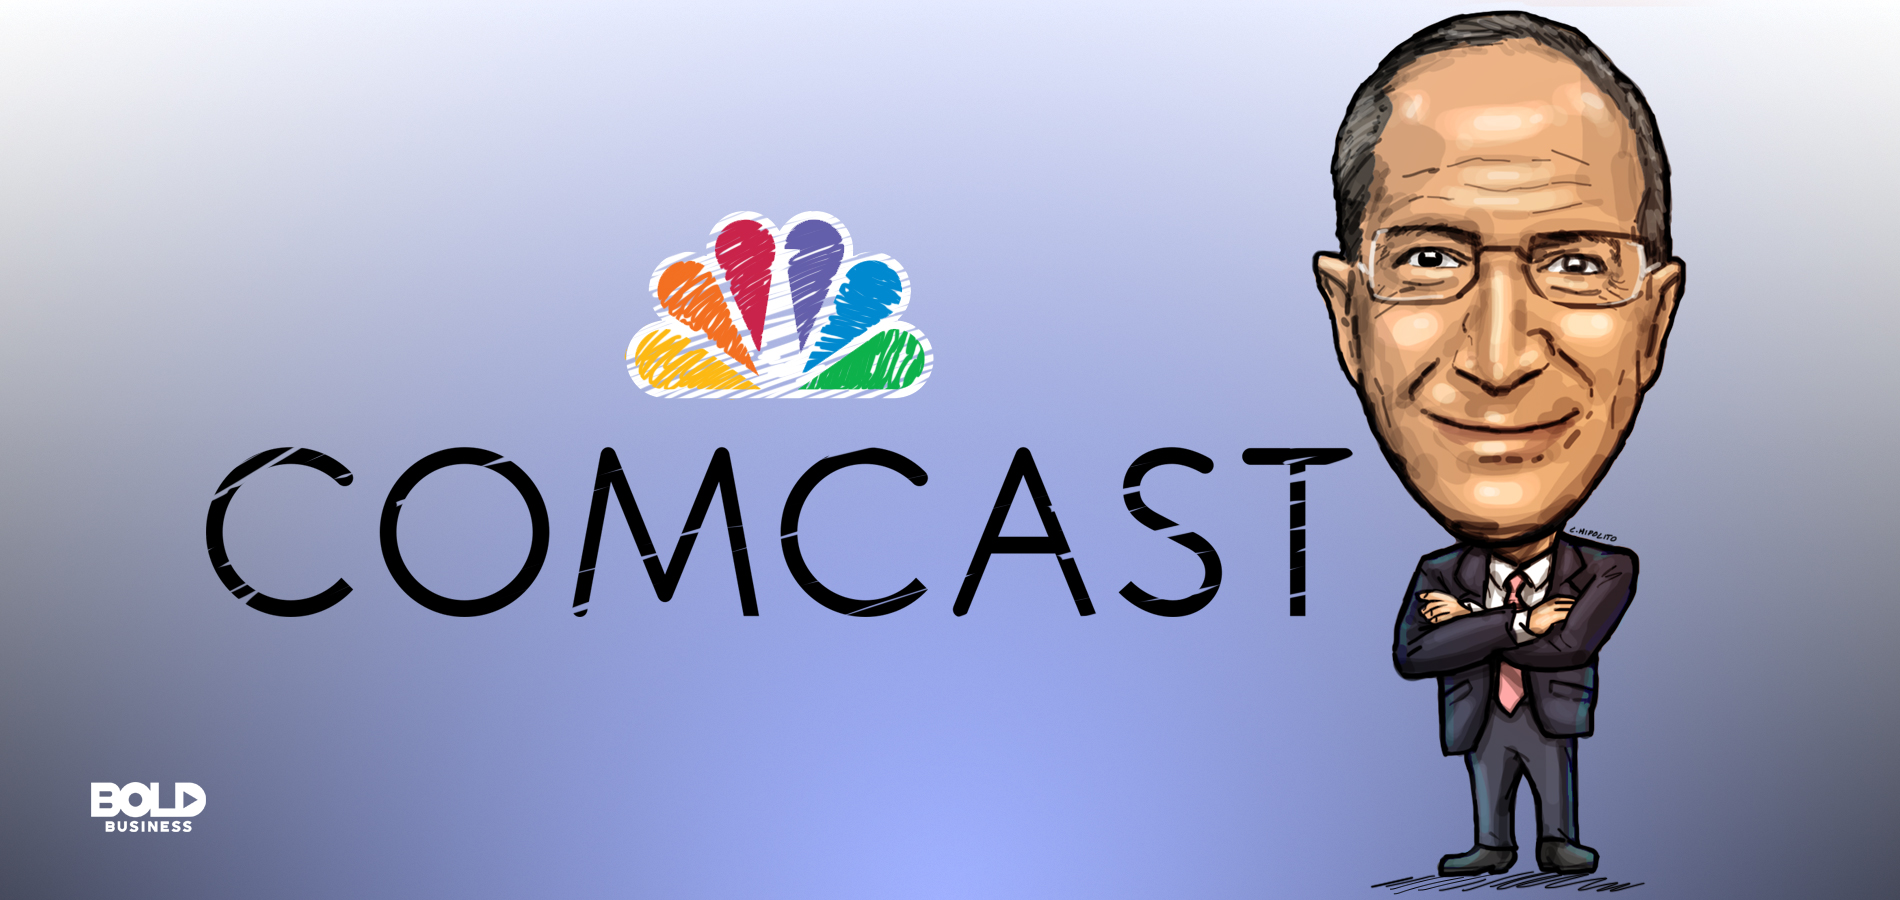 In an industry disrupted by technological advances, Brian Roberts has helped Comcast stay relevant.